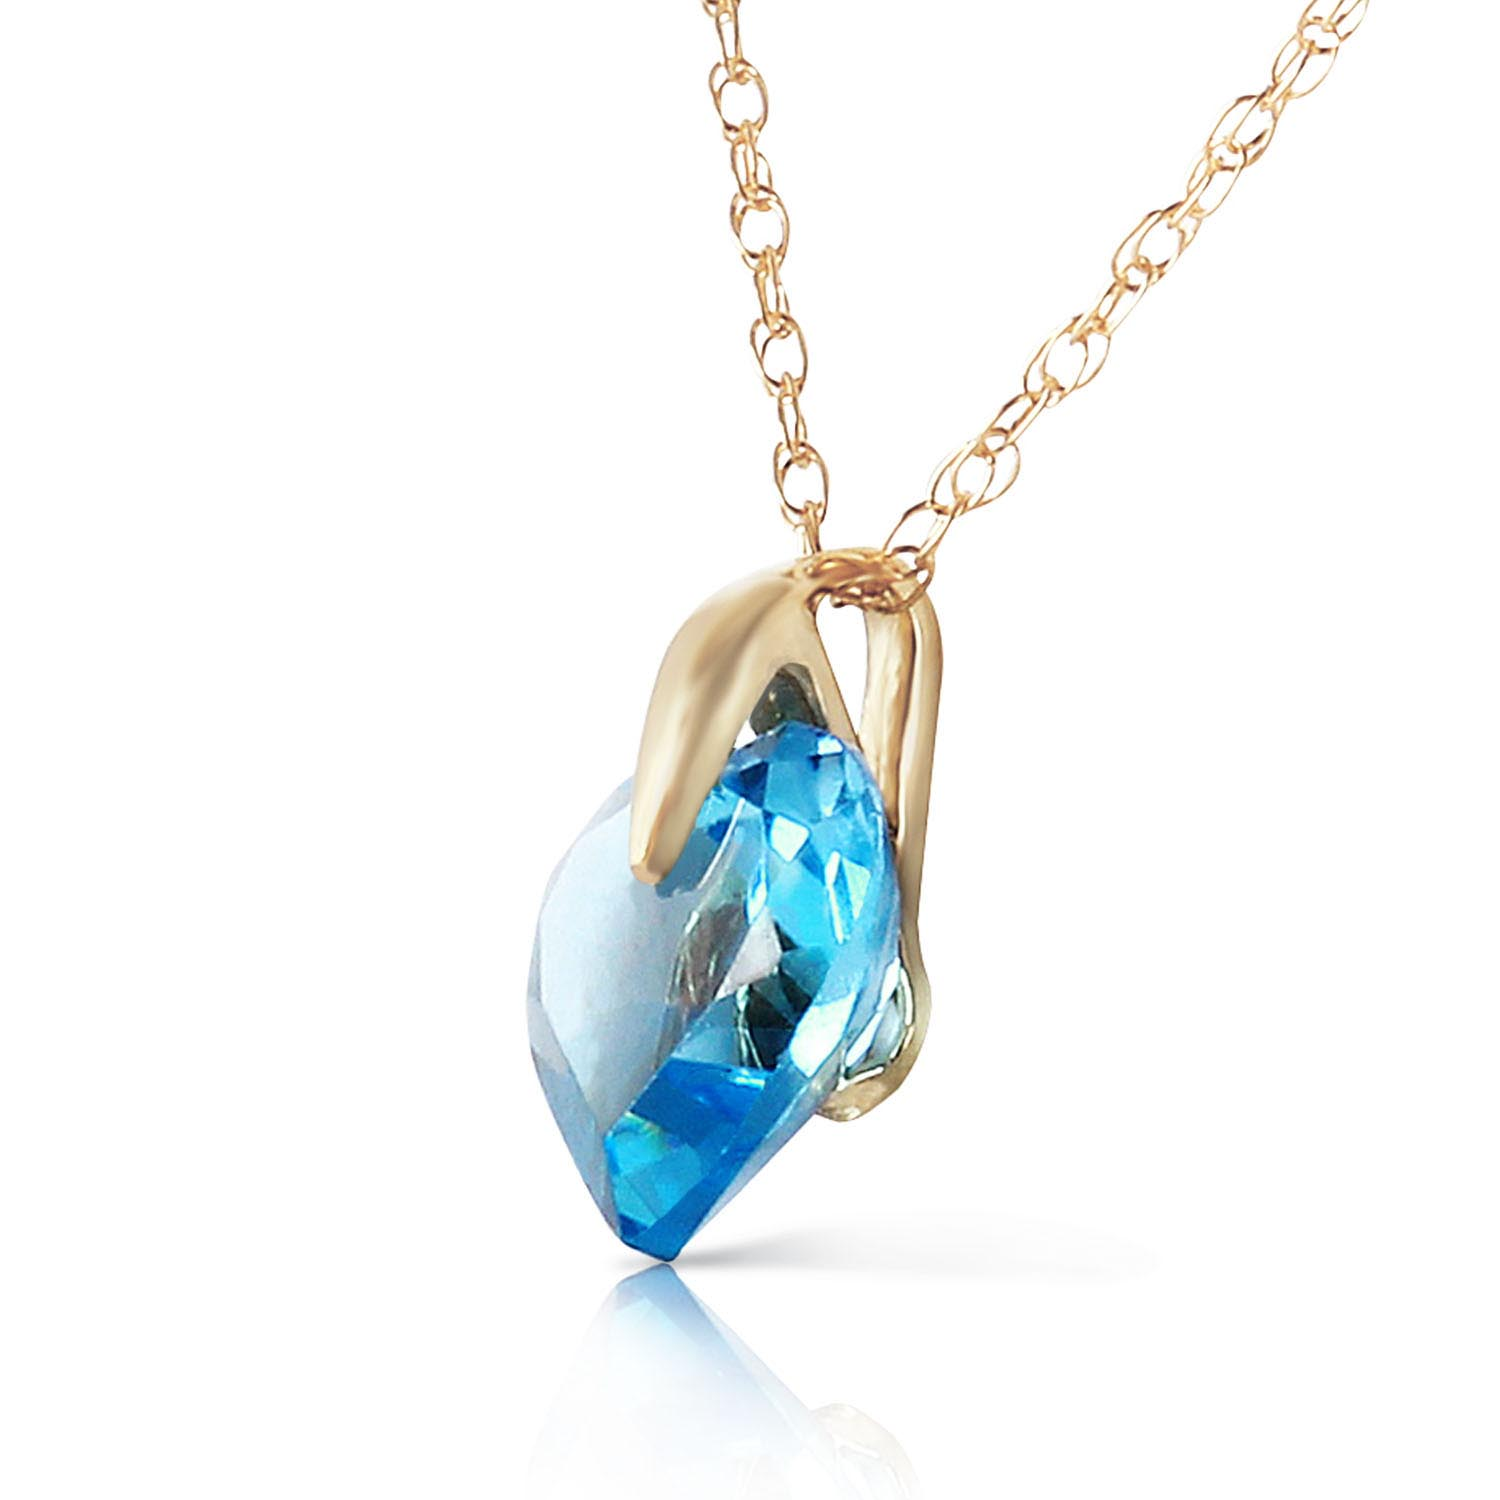 Blue Topaz Heart Pendant Necklace 1.15ct in 9ct Gold